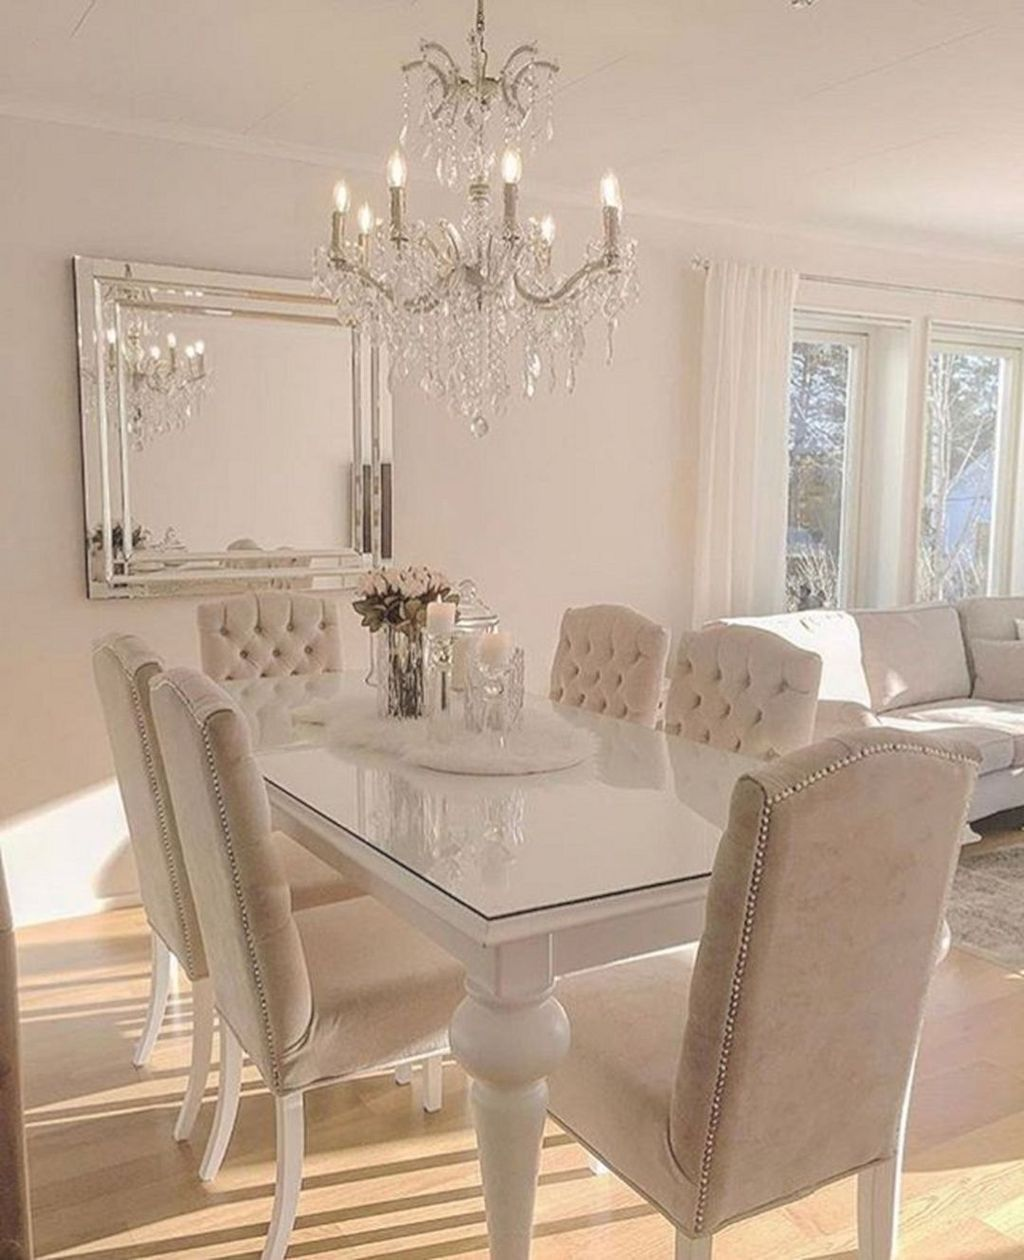 40 Cozy Dining Room Design Ideas That Looks Awesome Luxury Dining Room Beautiful Dining Rooms Dining Room Table Decor